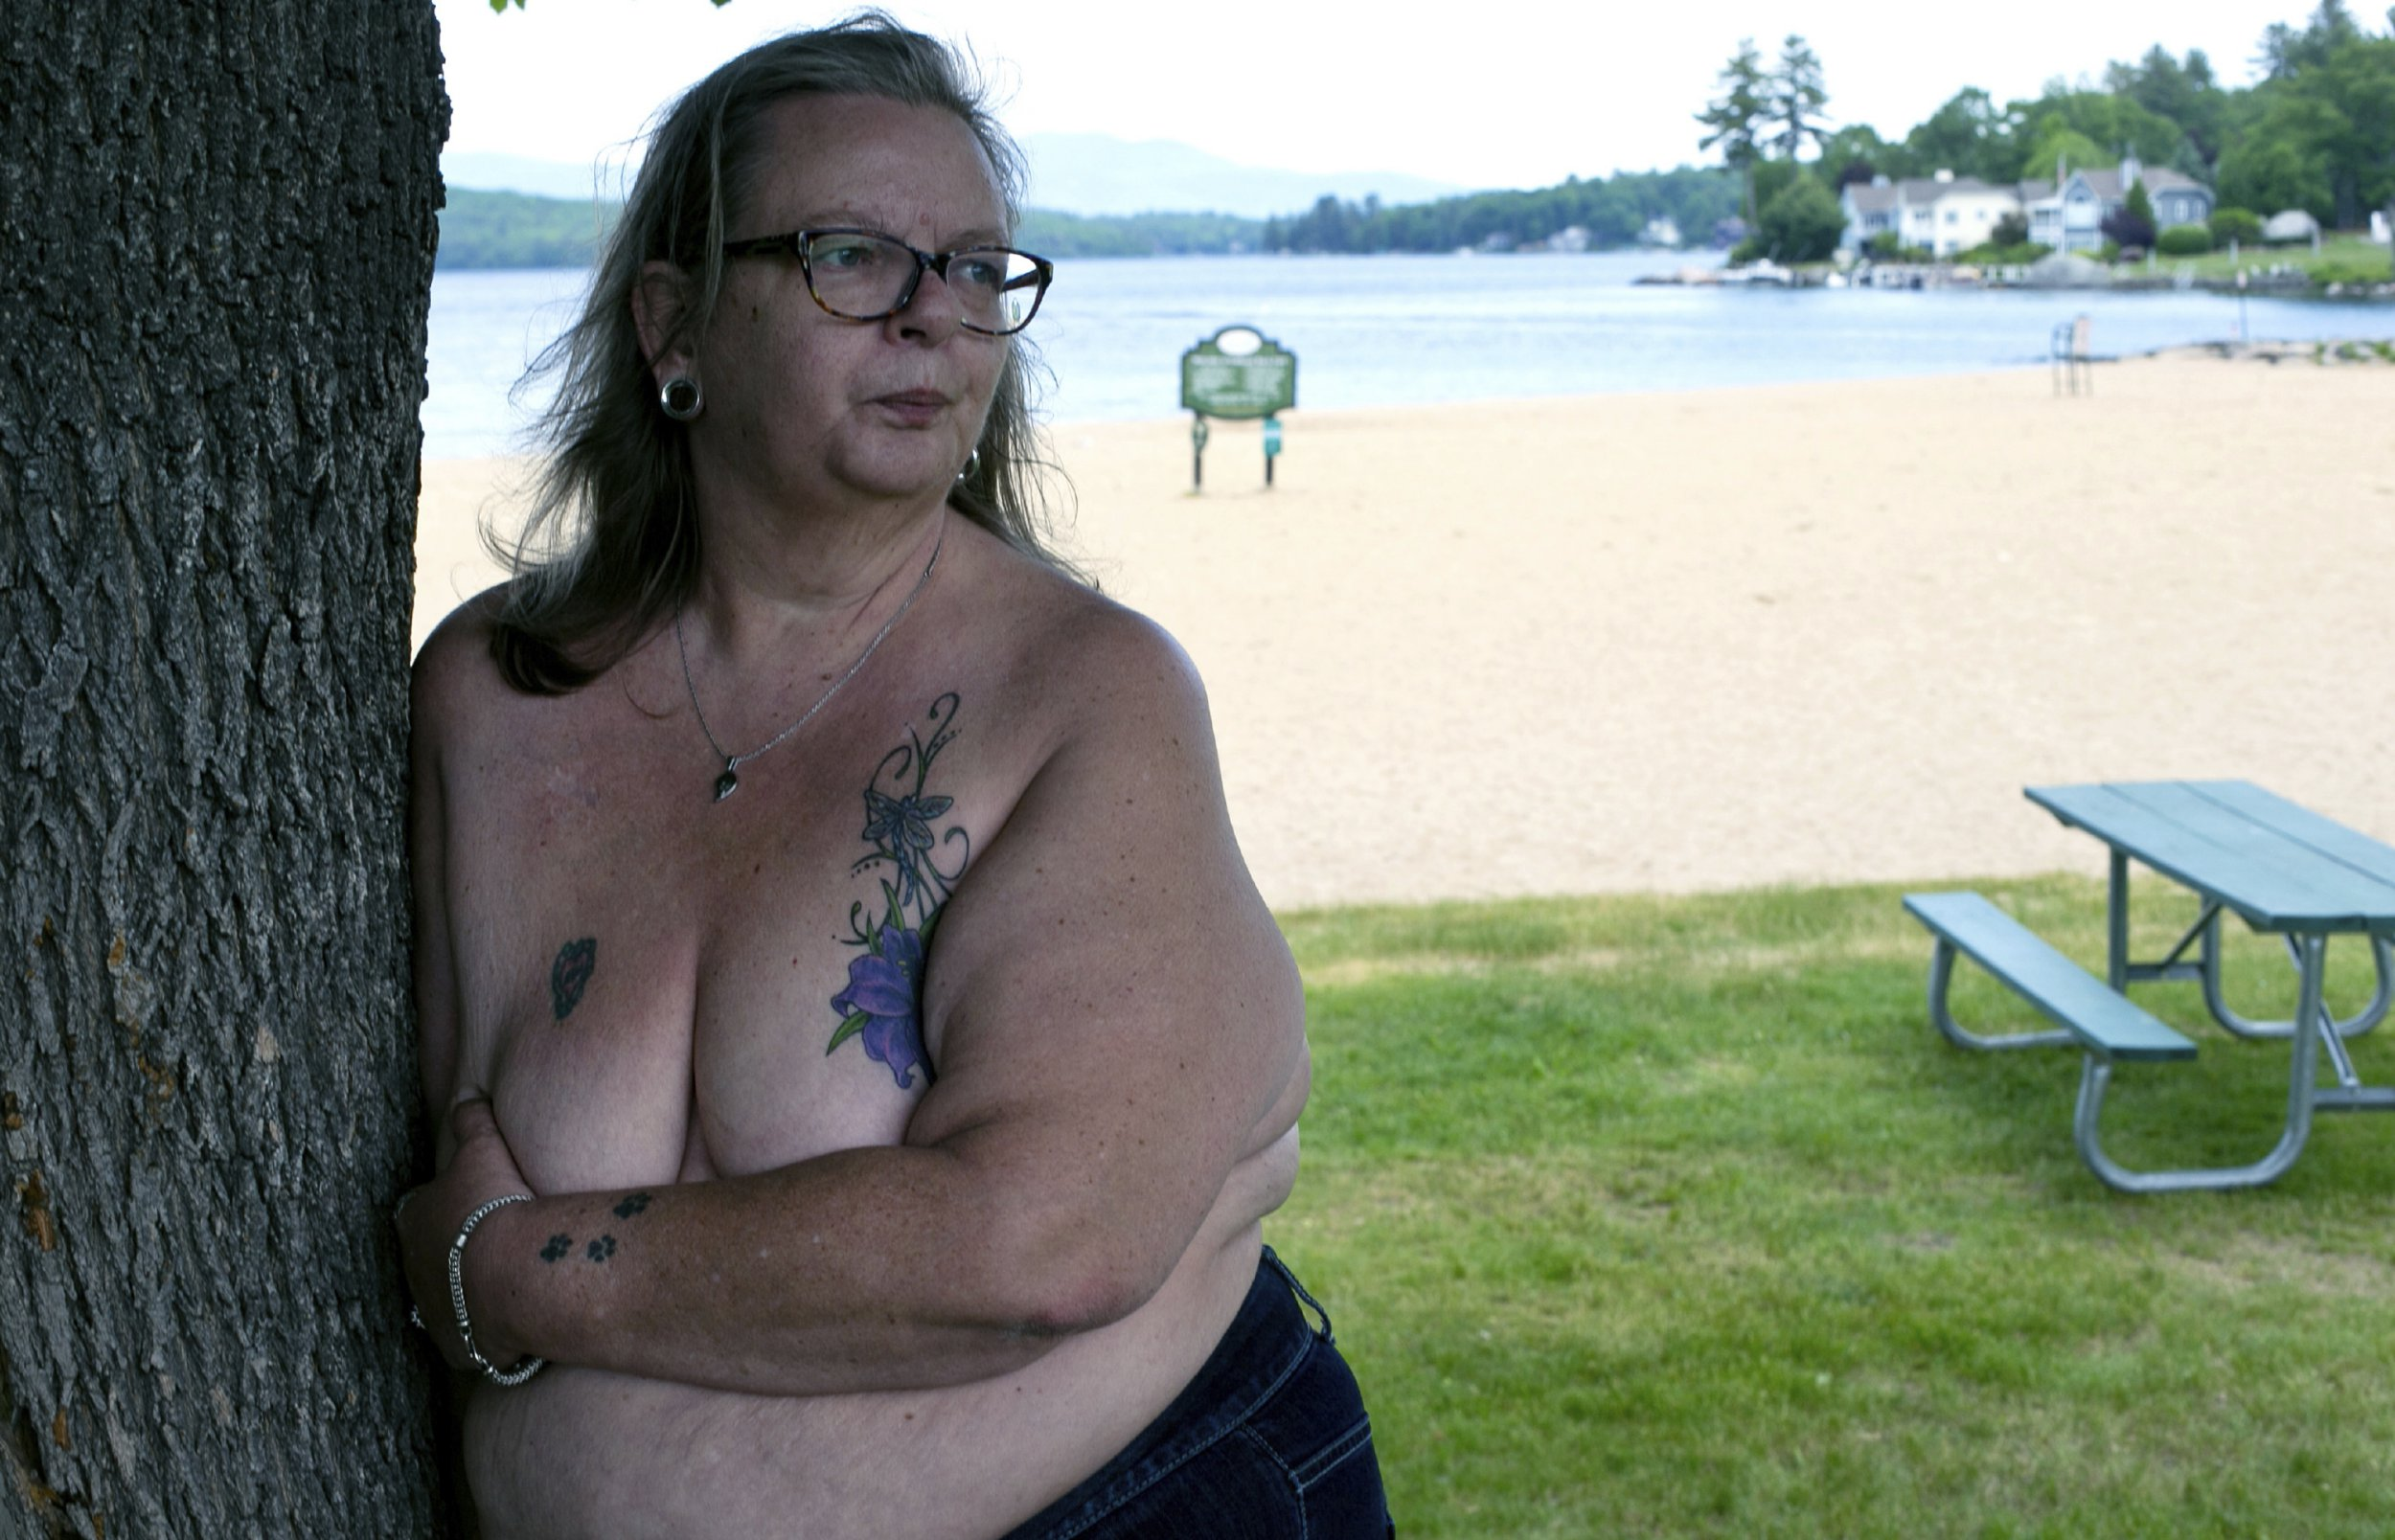 FILE - In this June 2, 2016 file photo, Heidi Lilley stands for a portrait near the spot where she was arrested by the Laconia, N.H. police. On Friday, Feb. 8, 2019, New Hampshire's highest court has upheld the conviction of three women arrested for going topless on a New Hampshire beach. In a 3-2 ruling, the court found Laconia's ordinance does not discriminate on the basis of gender or violate the women's right to free speech. (Geoff Forester/The Concord Monitor via AP)